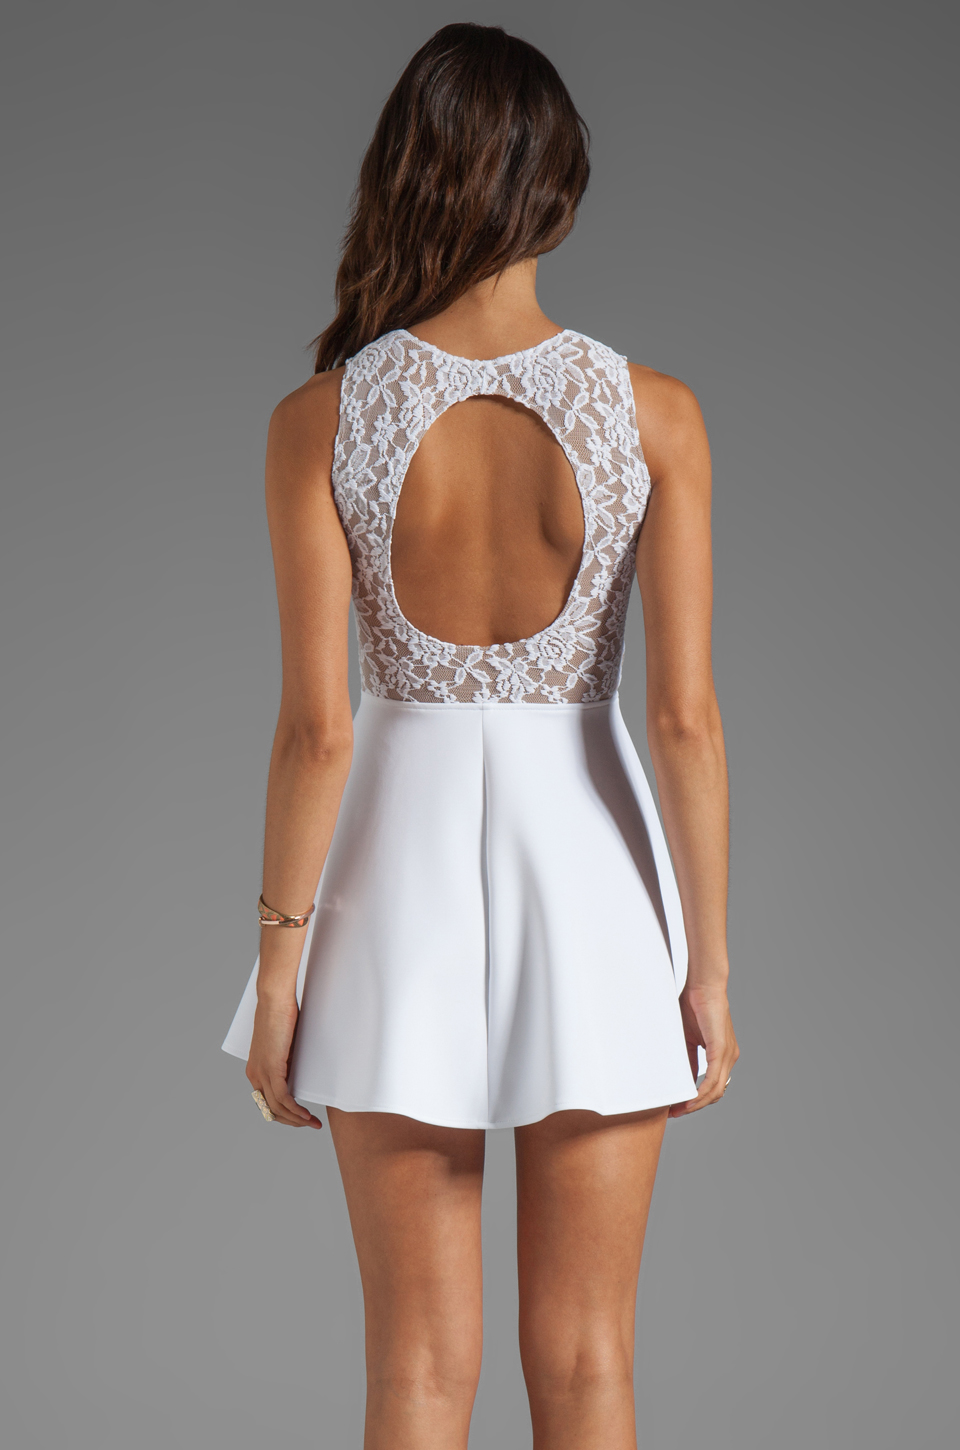 Boulee Avery Tank Dress in White Lace